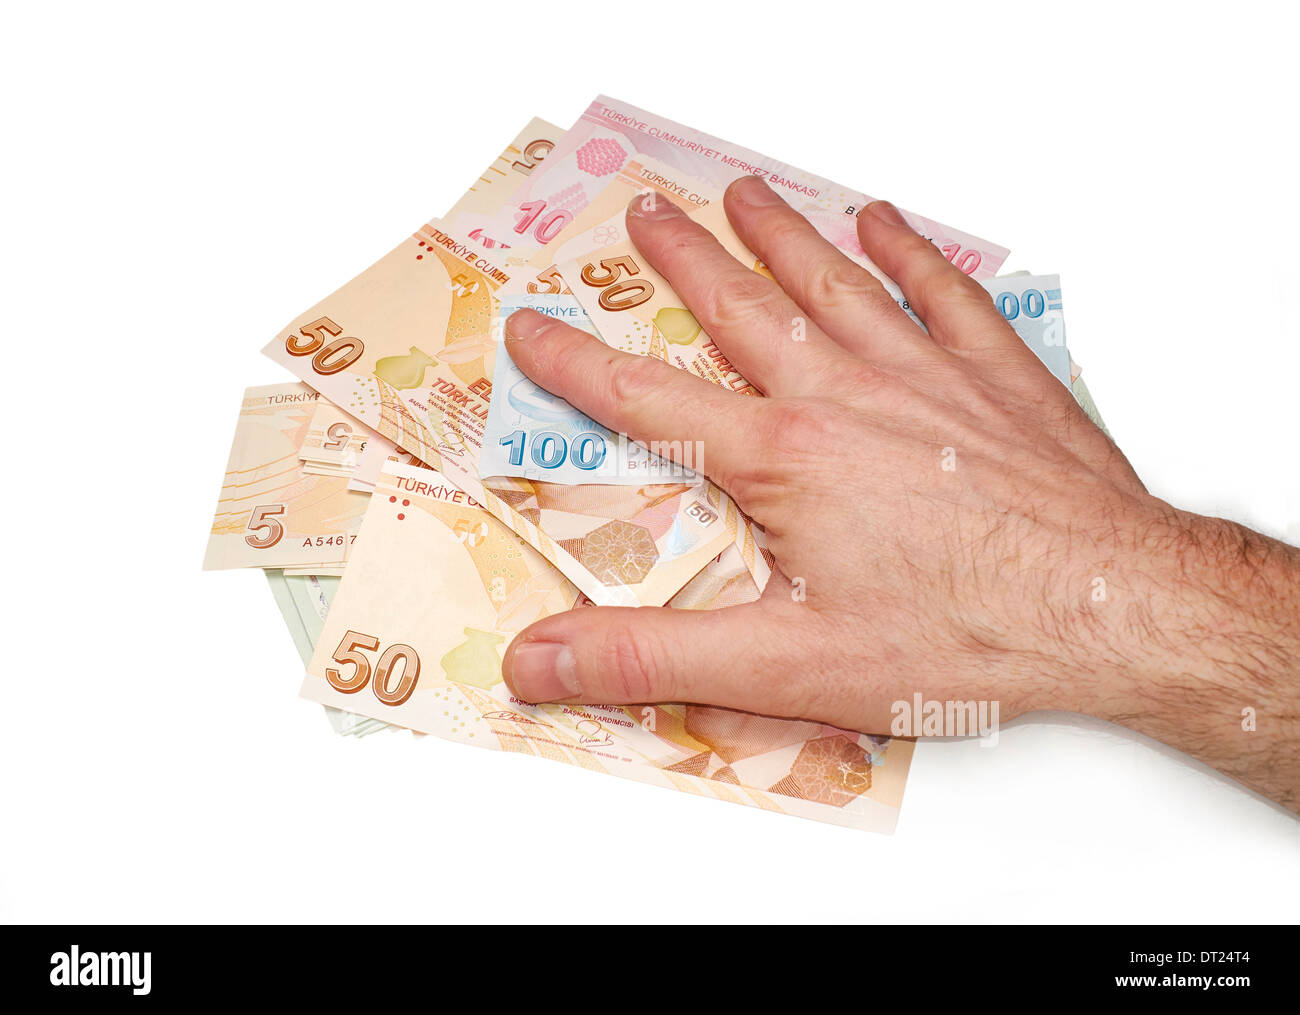 A hand holding a mixture of Turkish Lira Currency, on a white background. Stock Photo